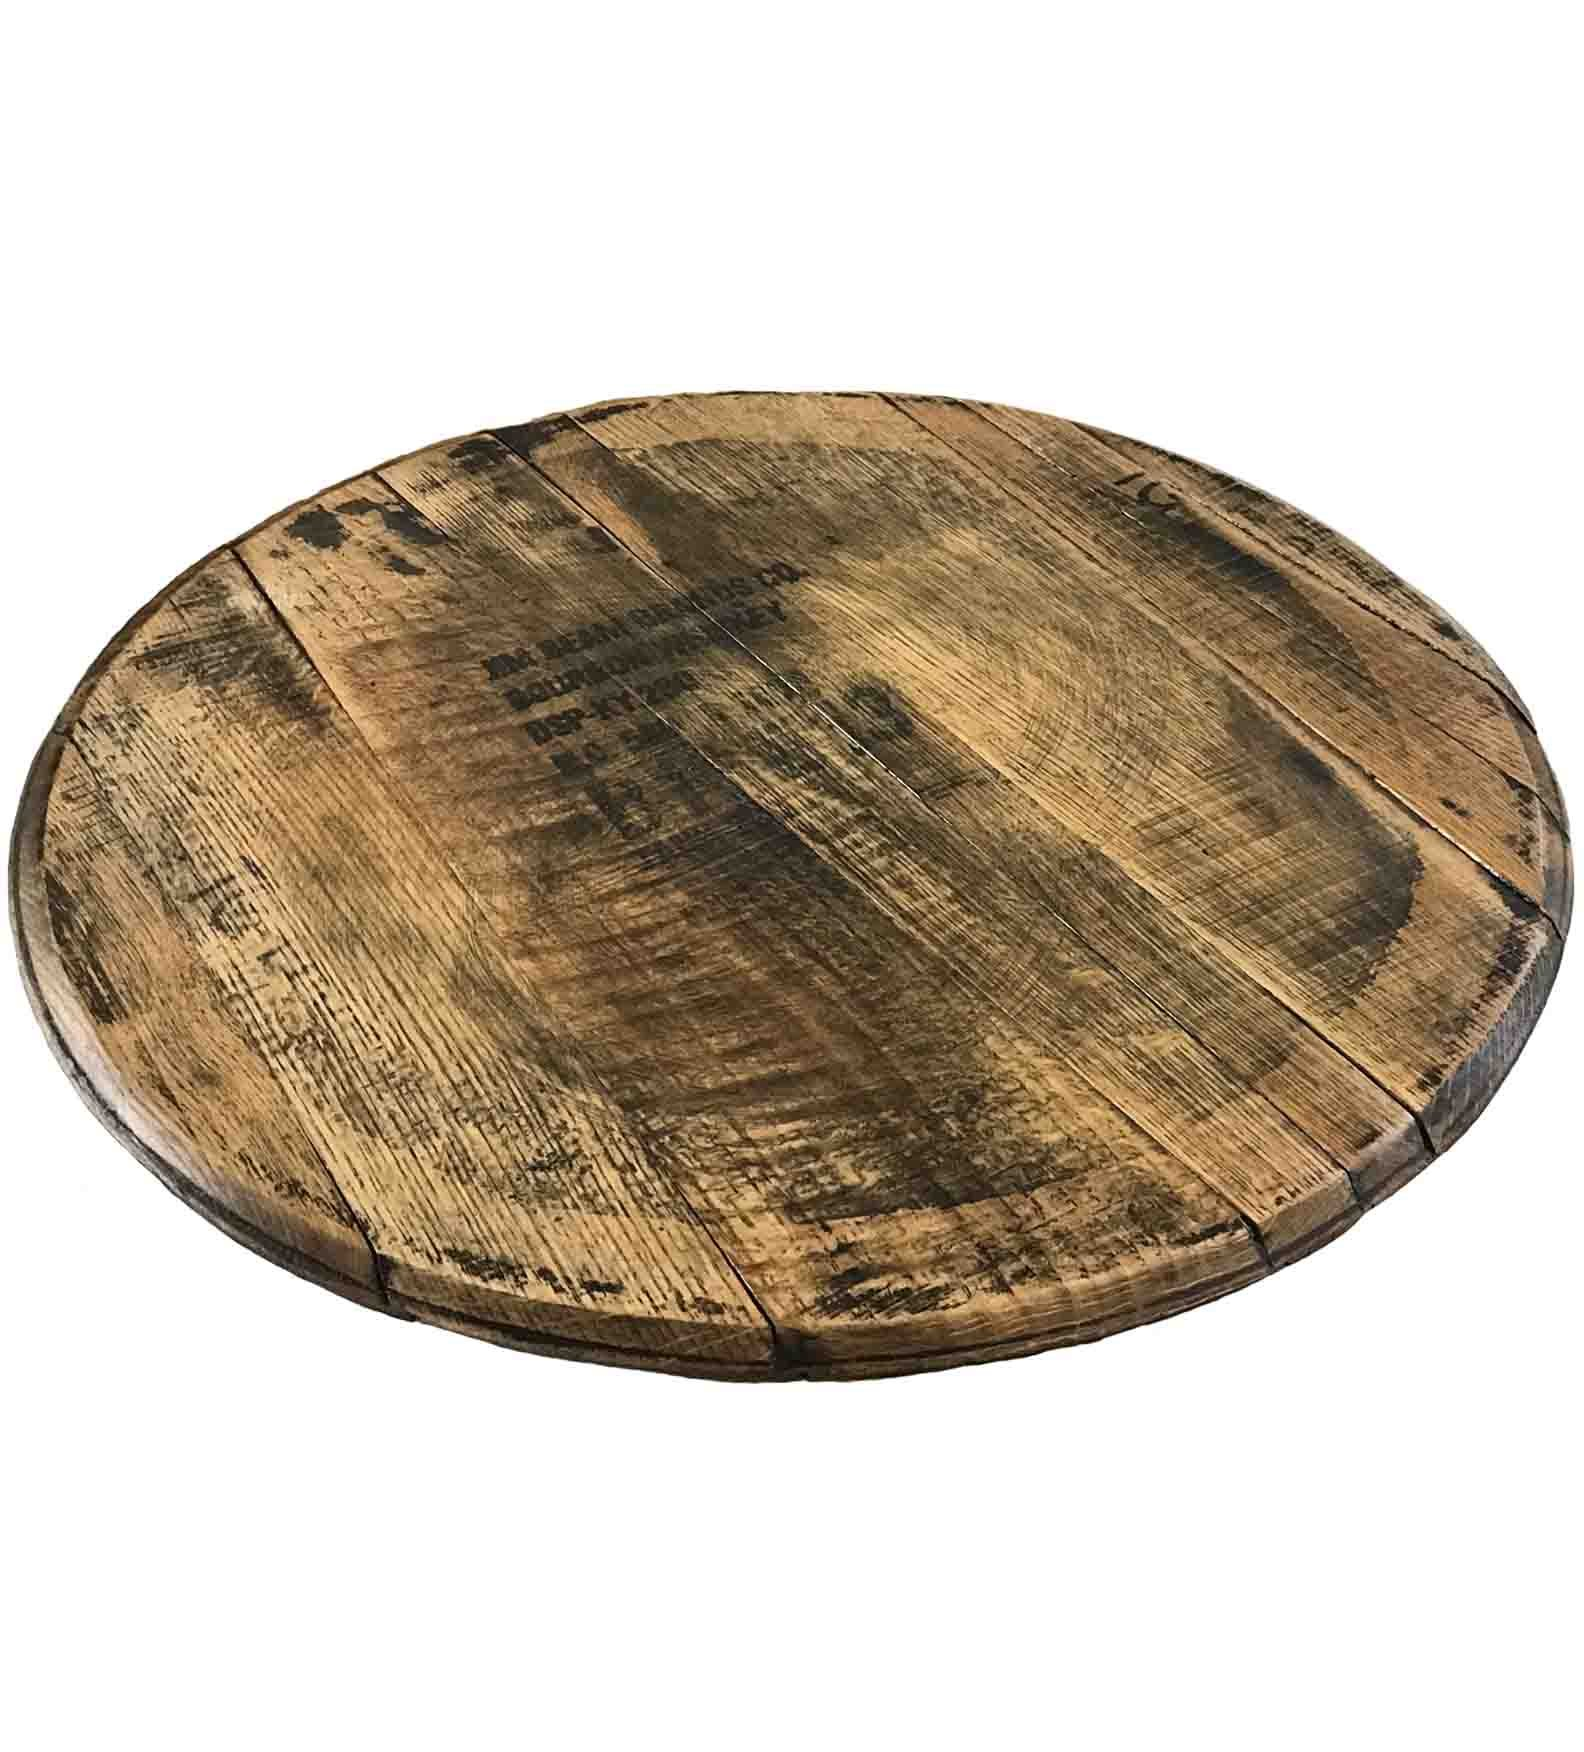 Authentic Jim Beam Whiskey Bourbon Barrel Lazy Susan, 21-Inches by Rustic Wall Co. by Rustic Wall Co.